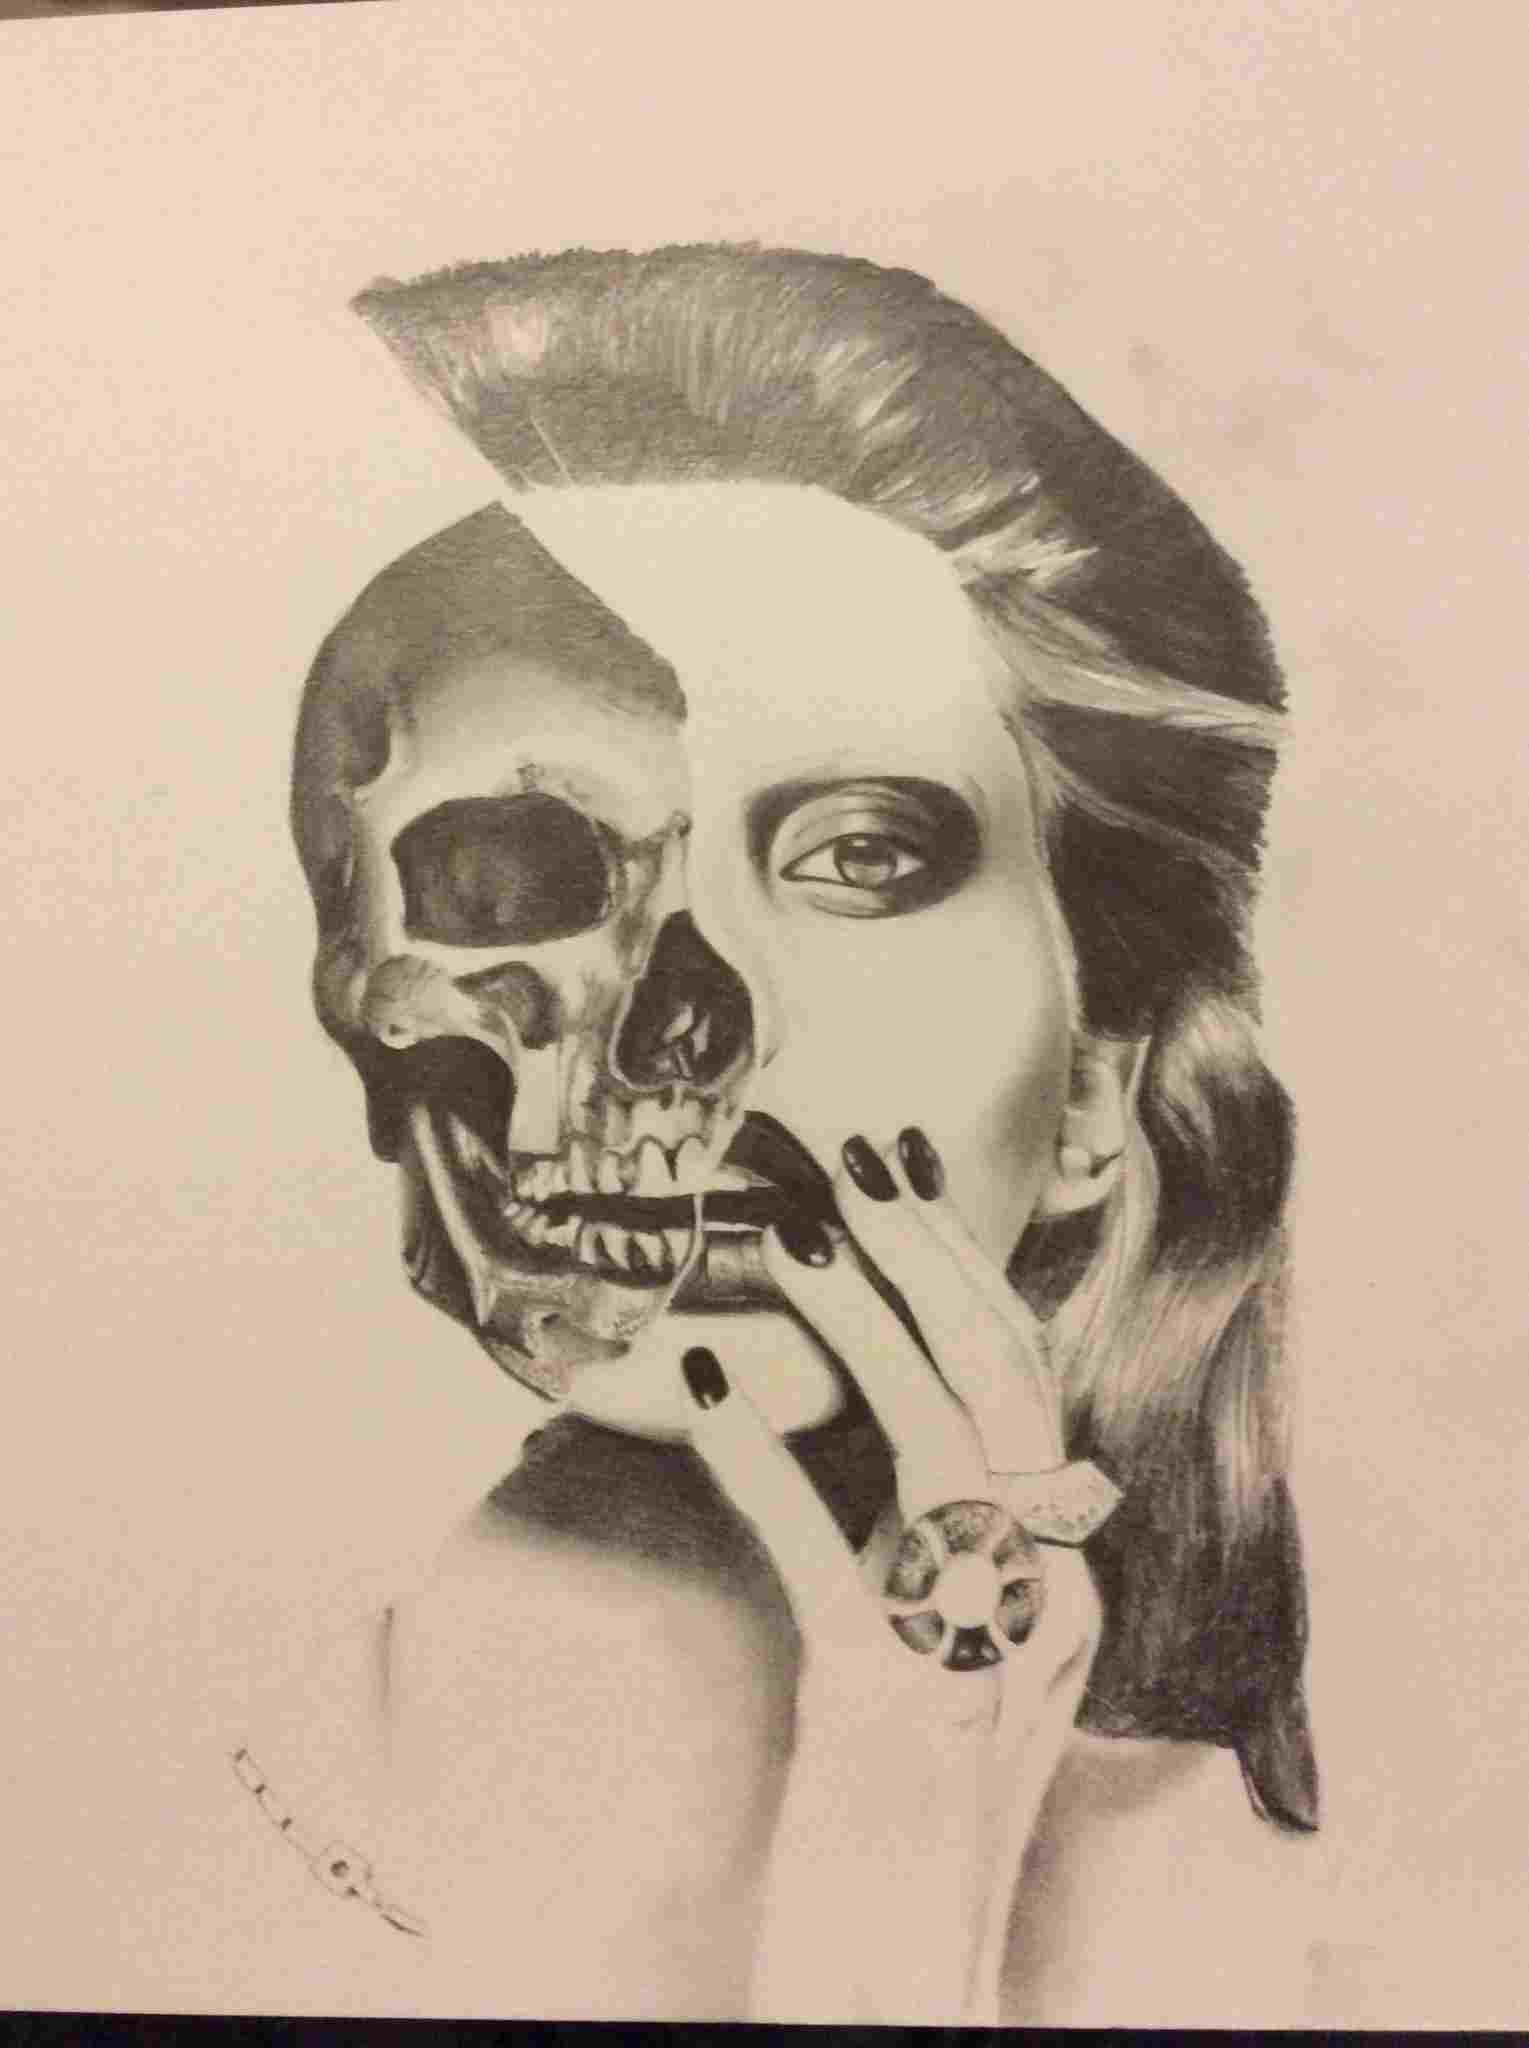 Pencil drawings creative drawings with deep meaning art drawing ideas